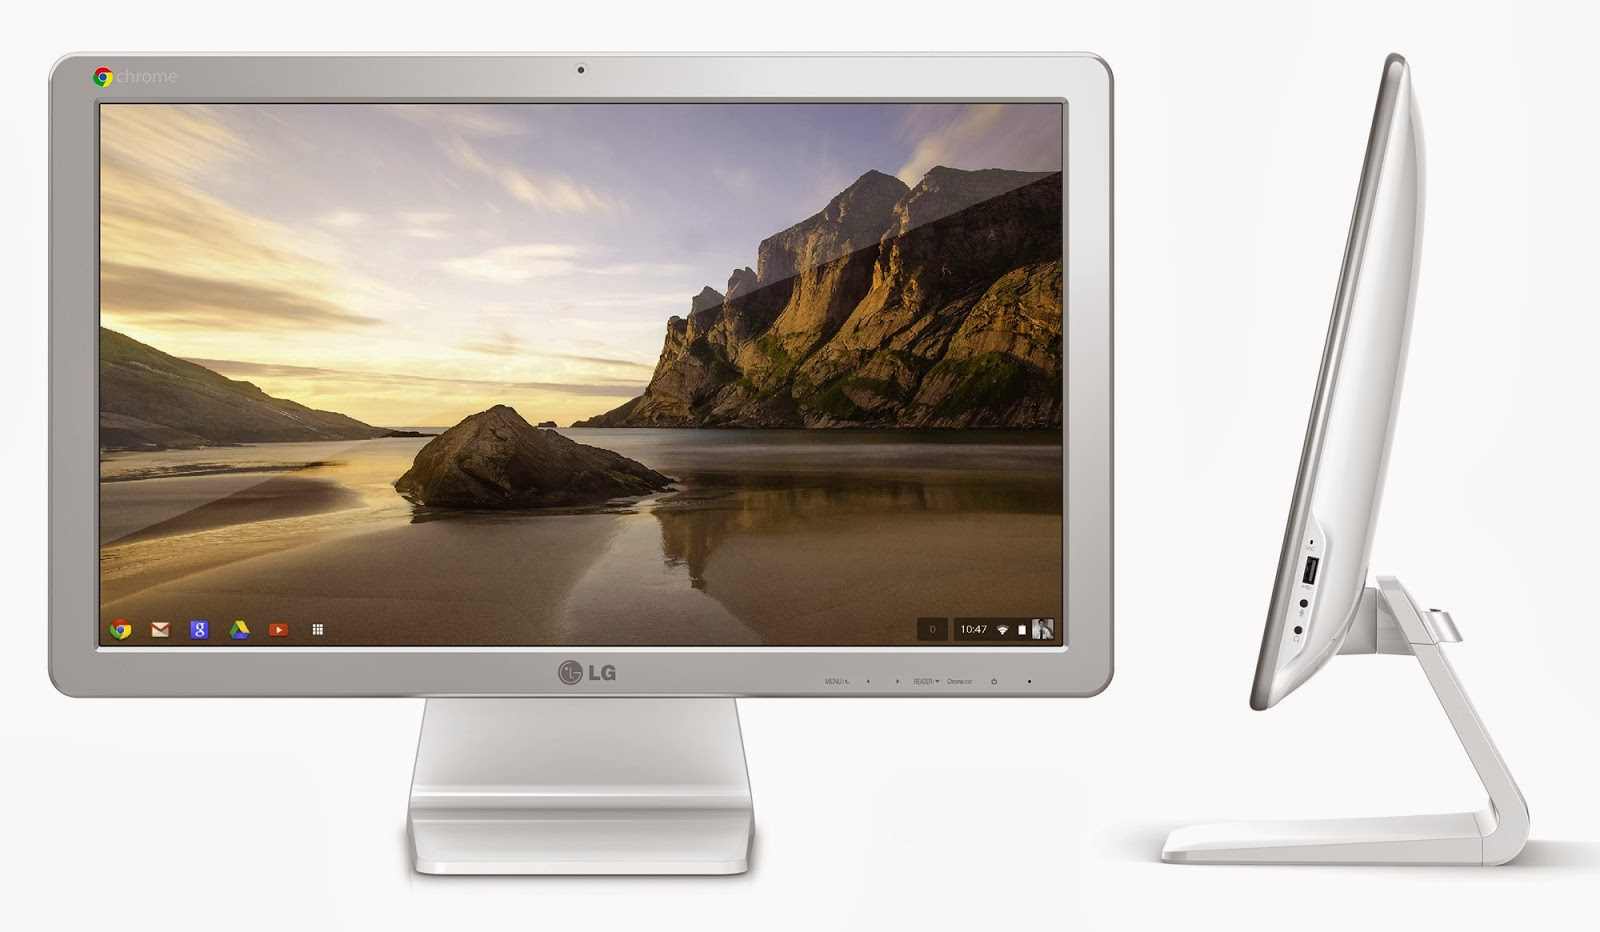 Equipped with a Full HD 21.5-inch screen, this is the first all-in-one Google Chrome OS, signed by LG.